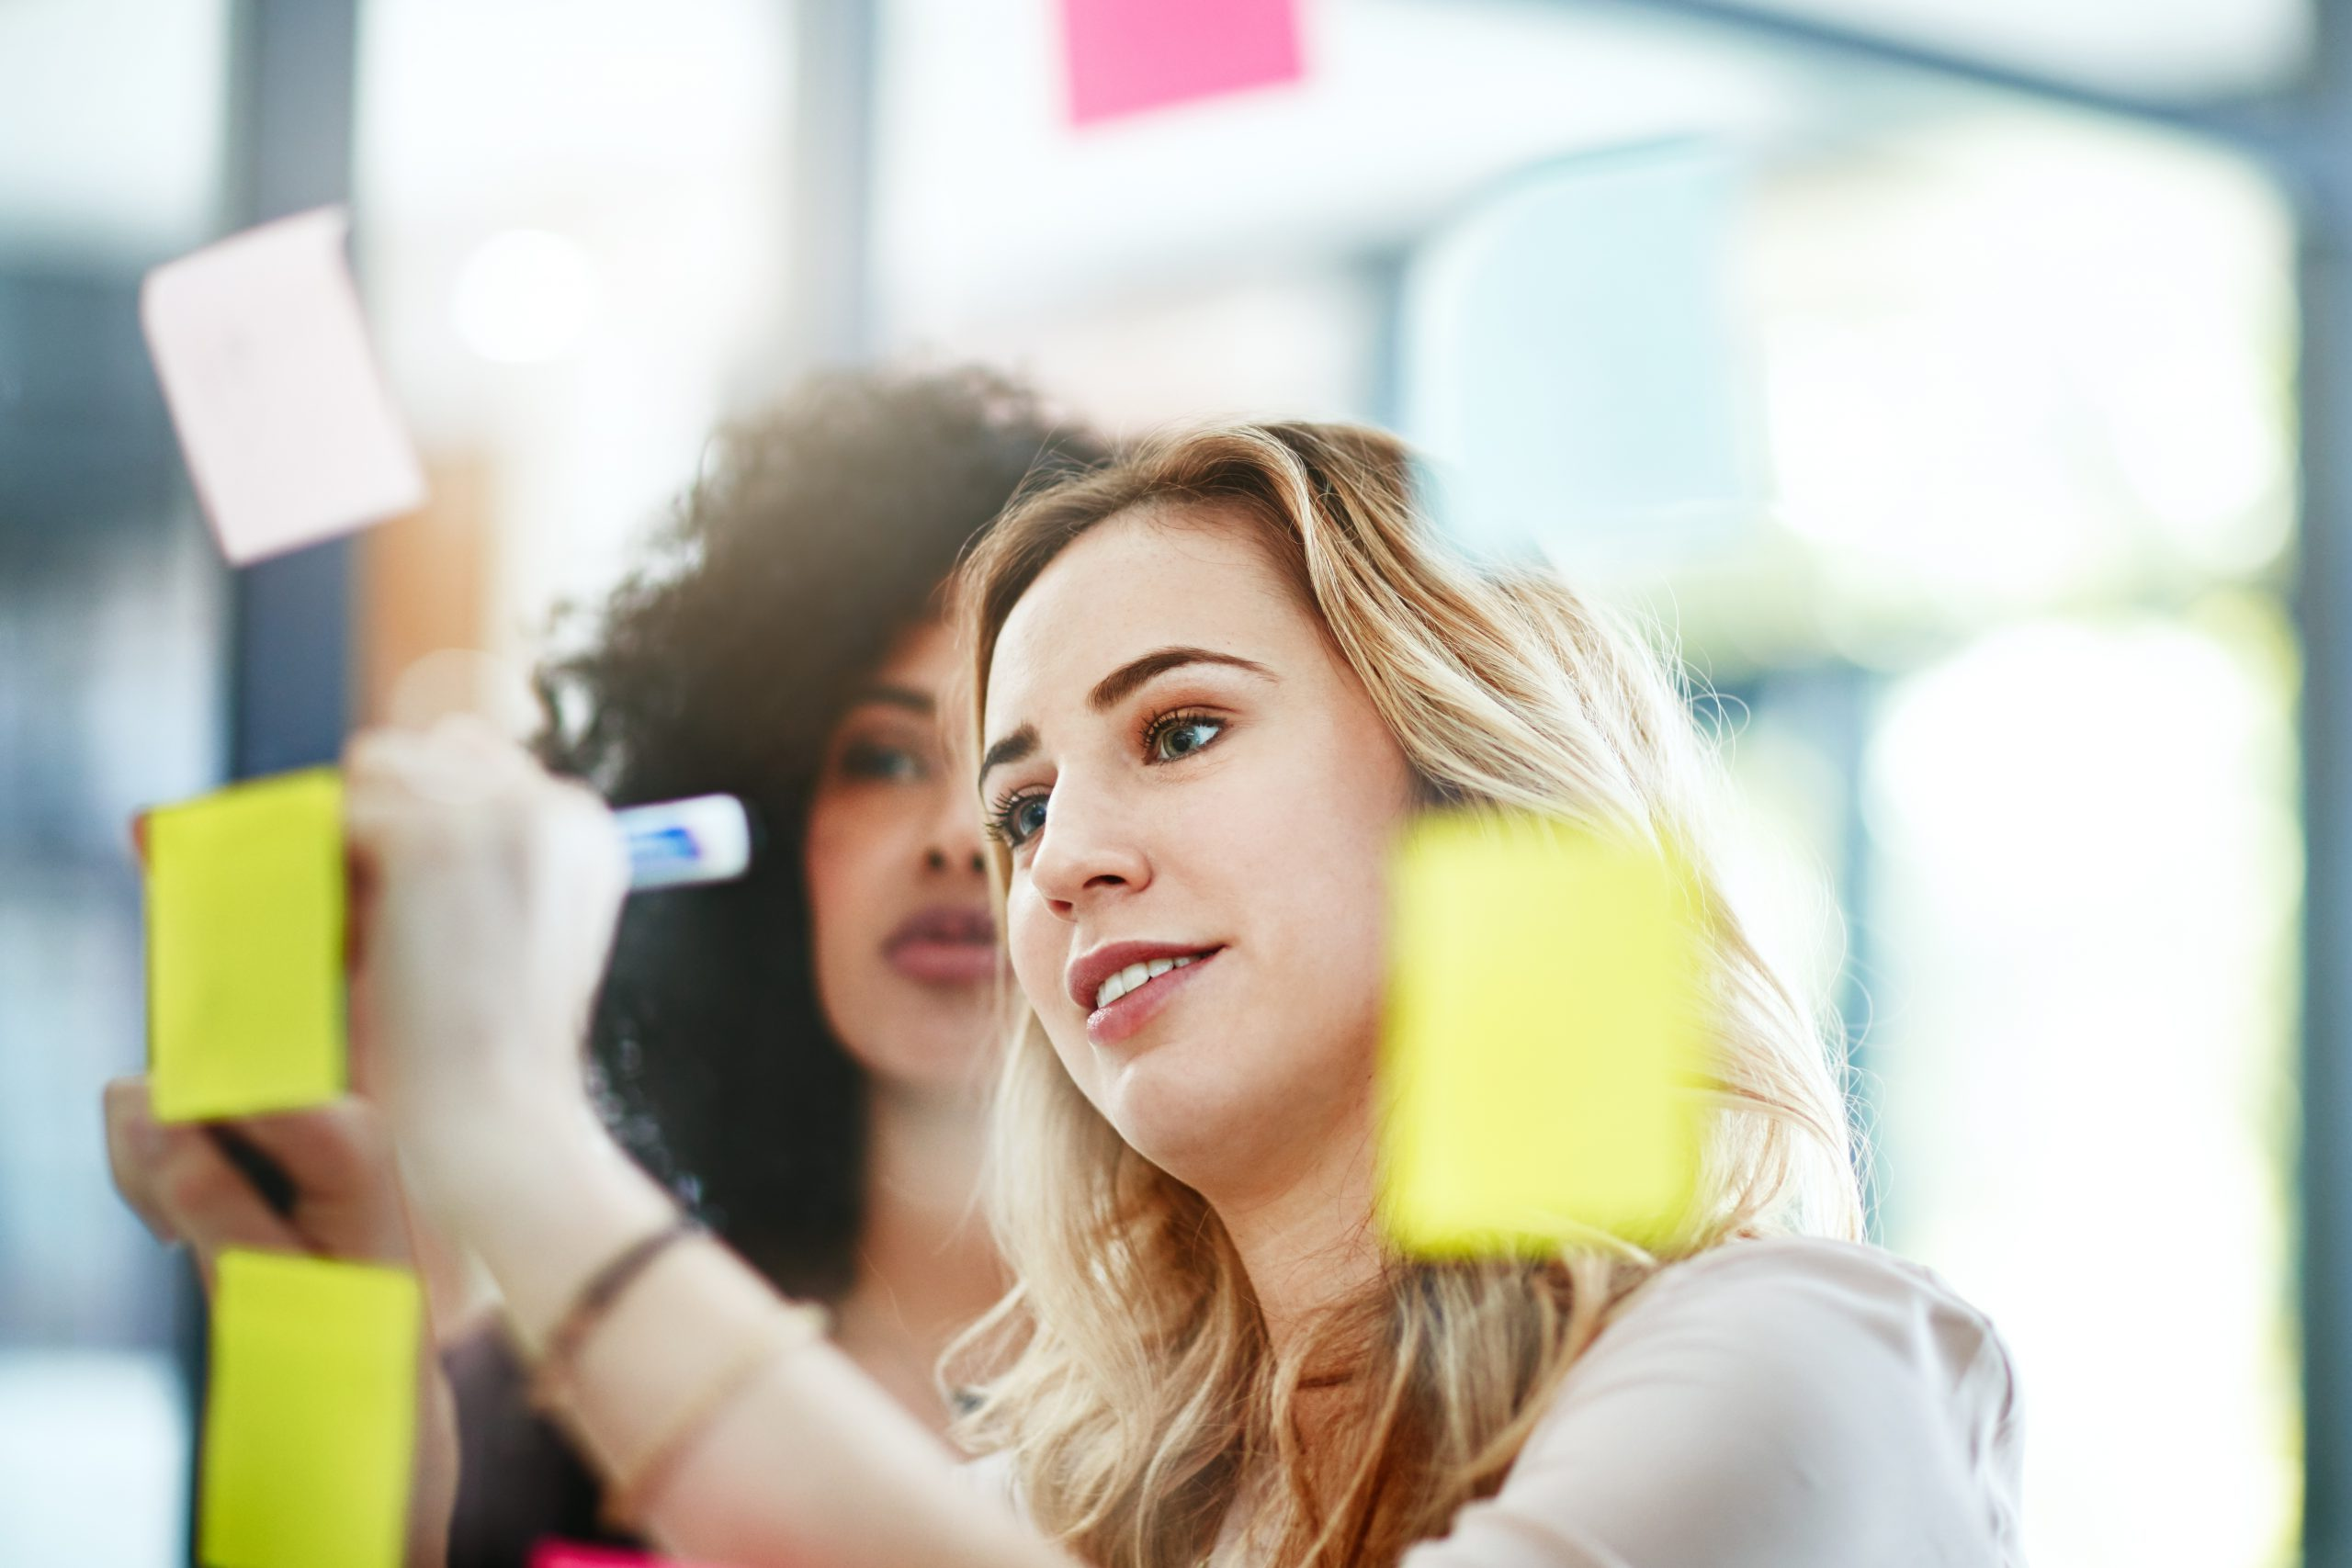 A woman looks on as another woman writes on a sticky note